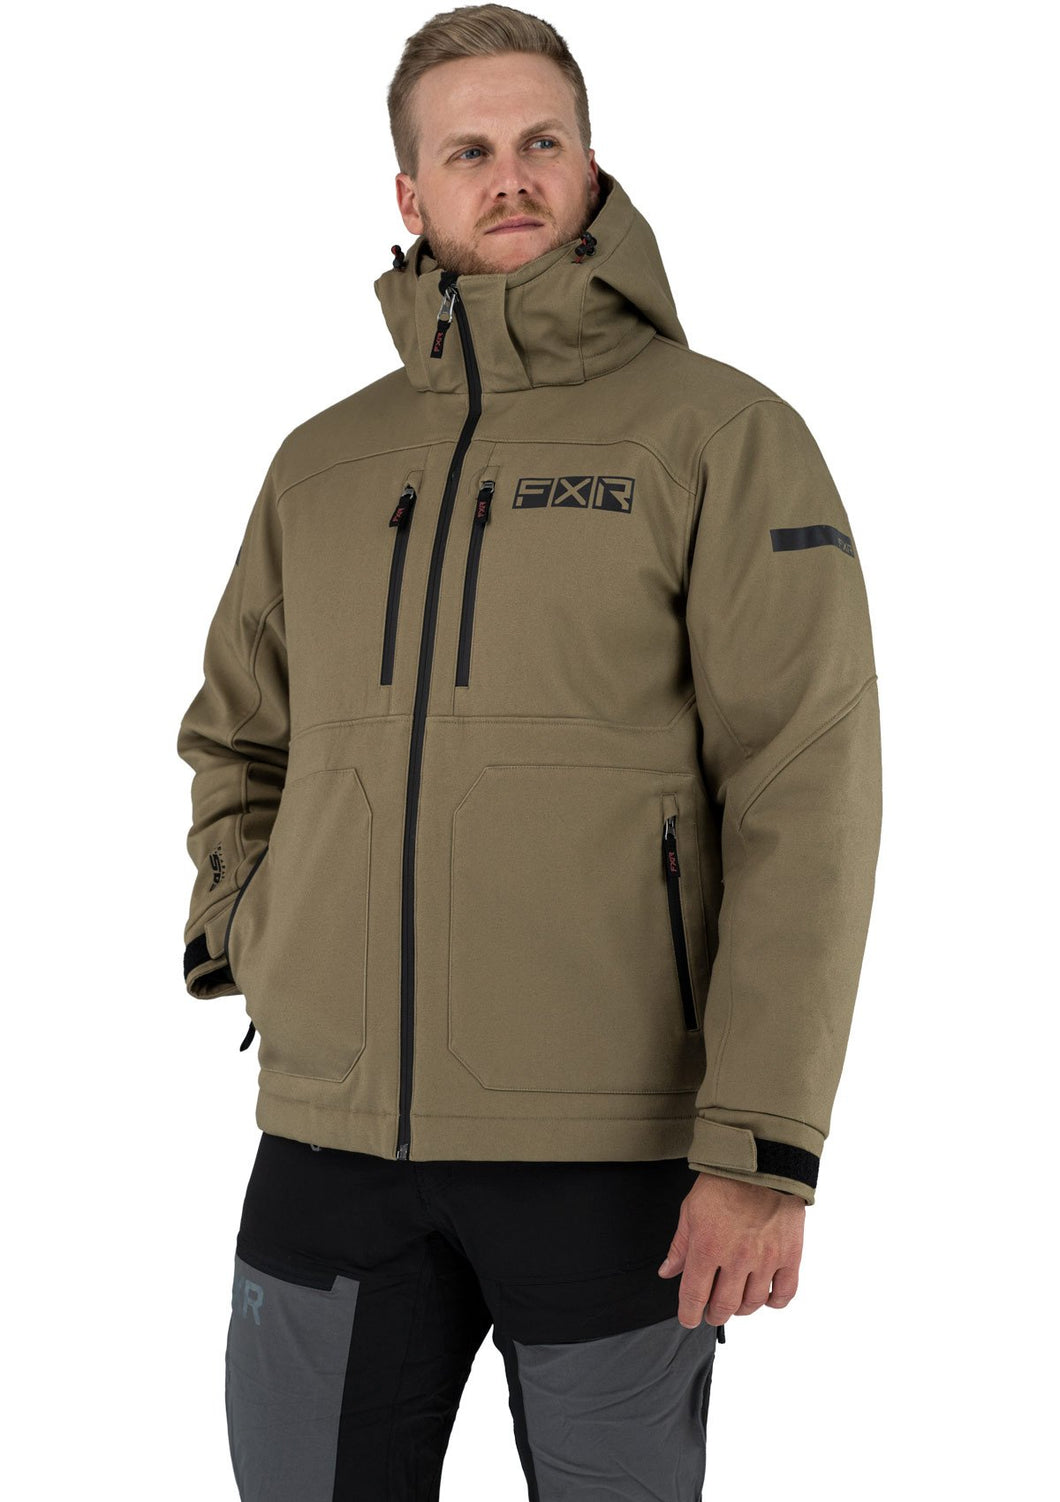 M Task Insulated Softshell Jacket 21